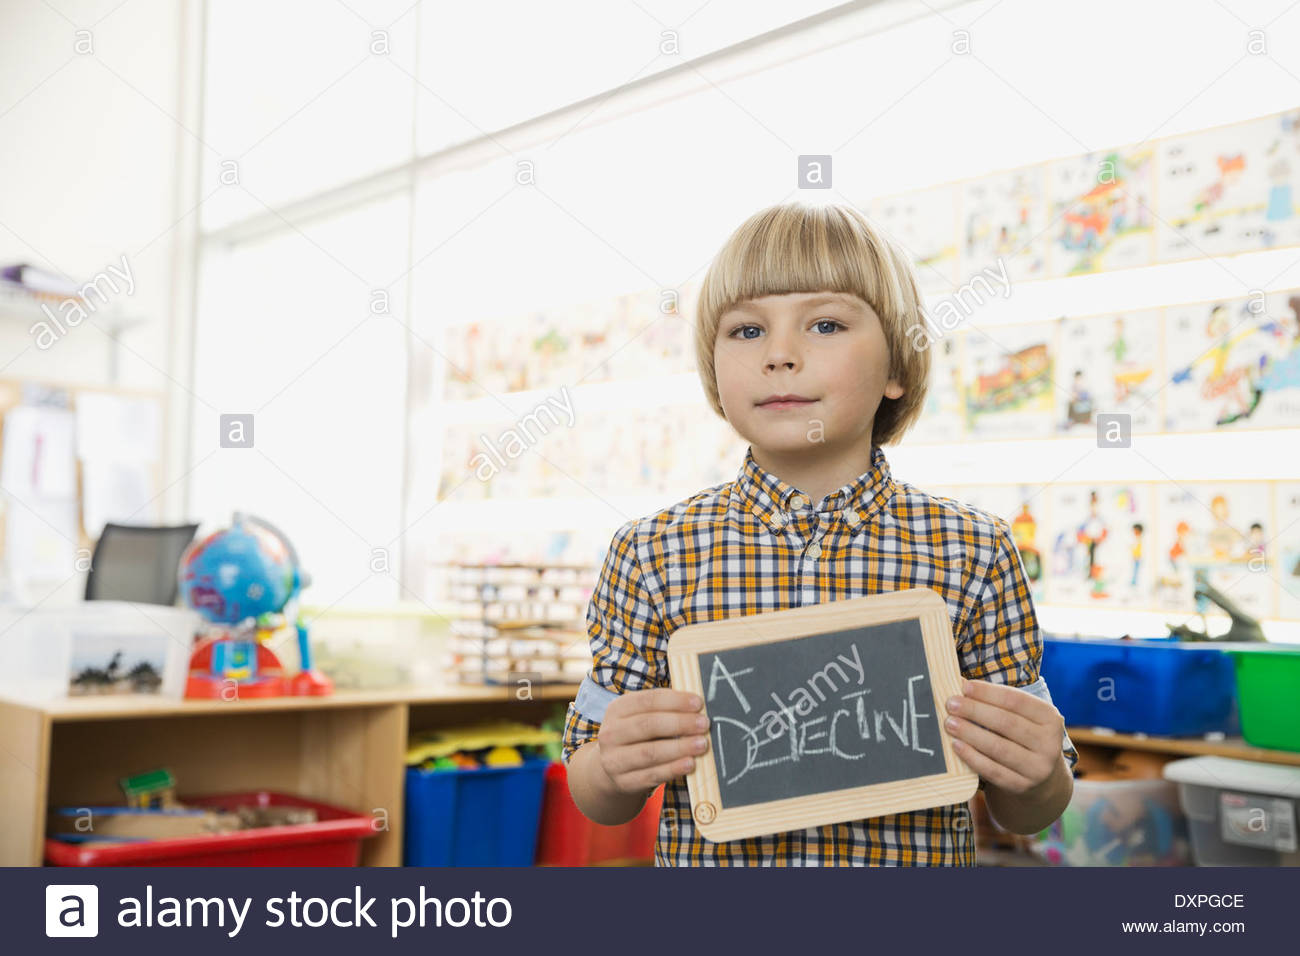 Confident boy holding slate with 'A Detective' written on it - Stock Image